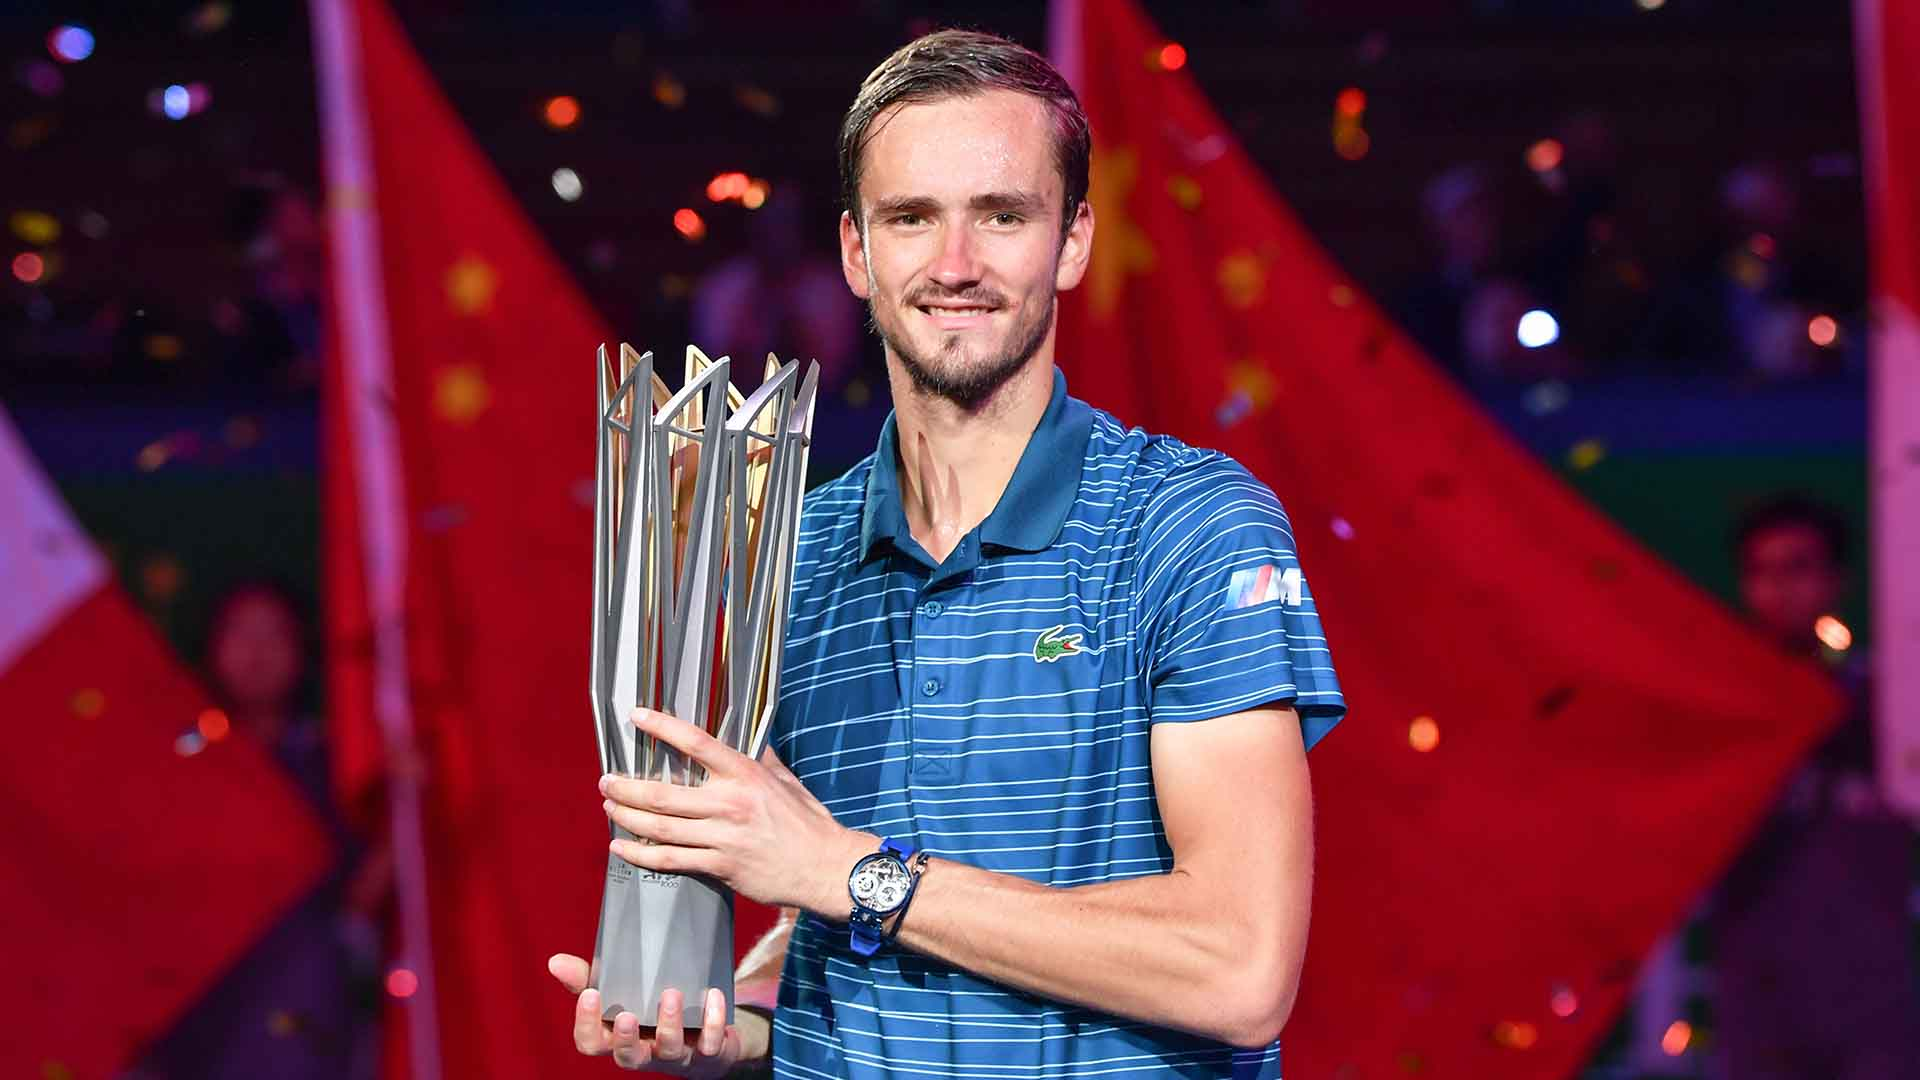 <a href='https://www.atptour.com/en/players/daniil-medvedev/mm58/overview'>Daniil Medvedev</a> owns a 59-17 tour-level record this year.